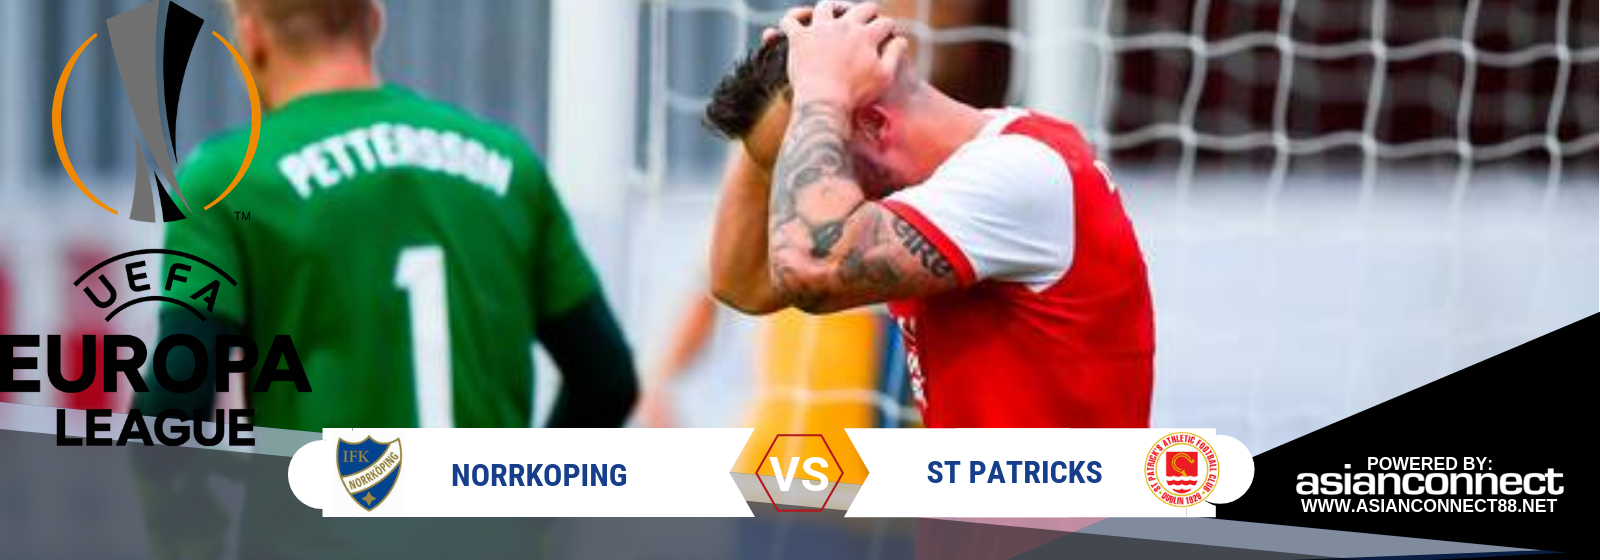 UEL Norkopping Vs. St Patricks Asian Connect